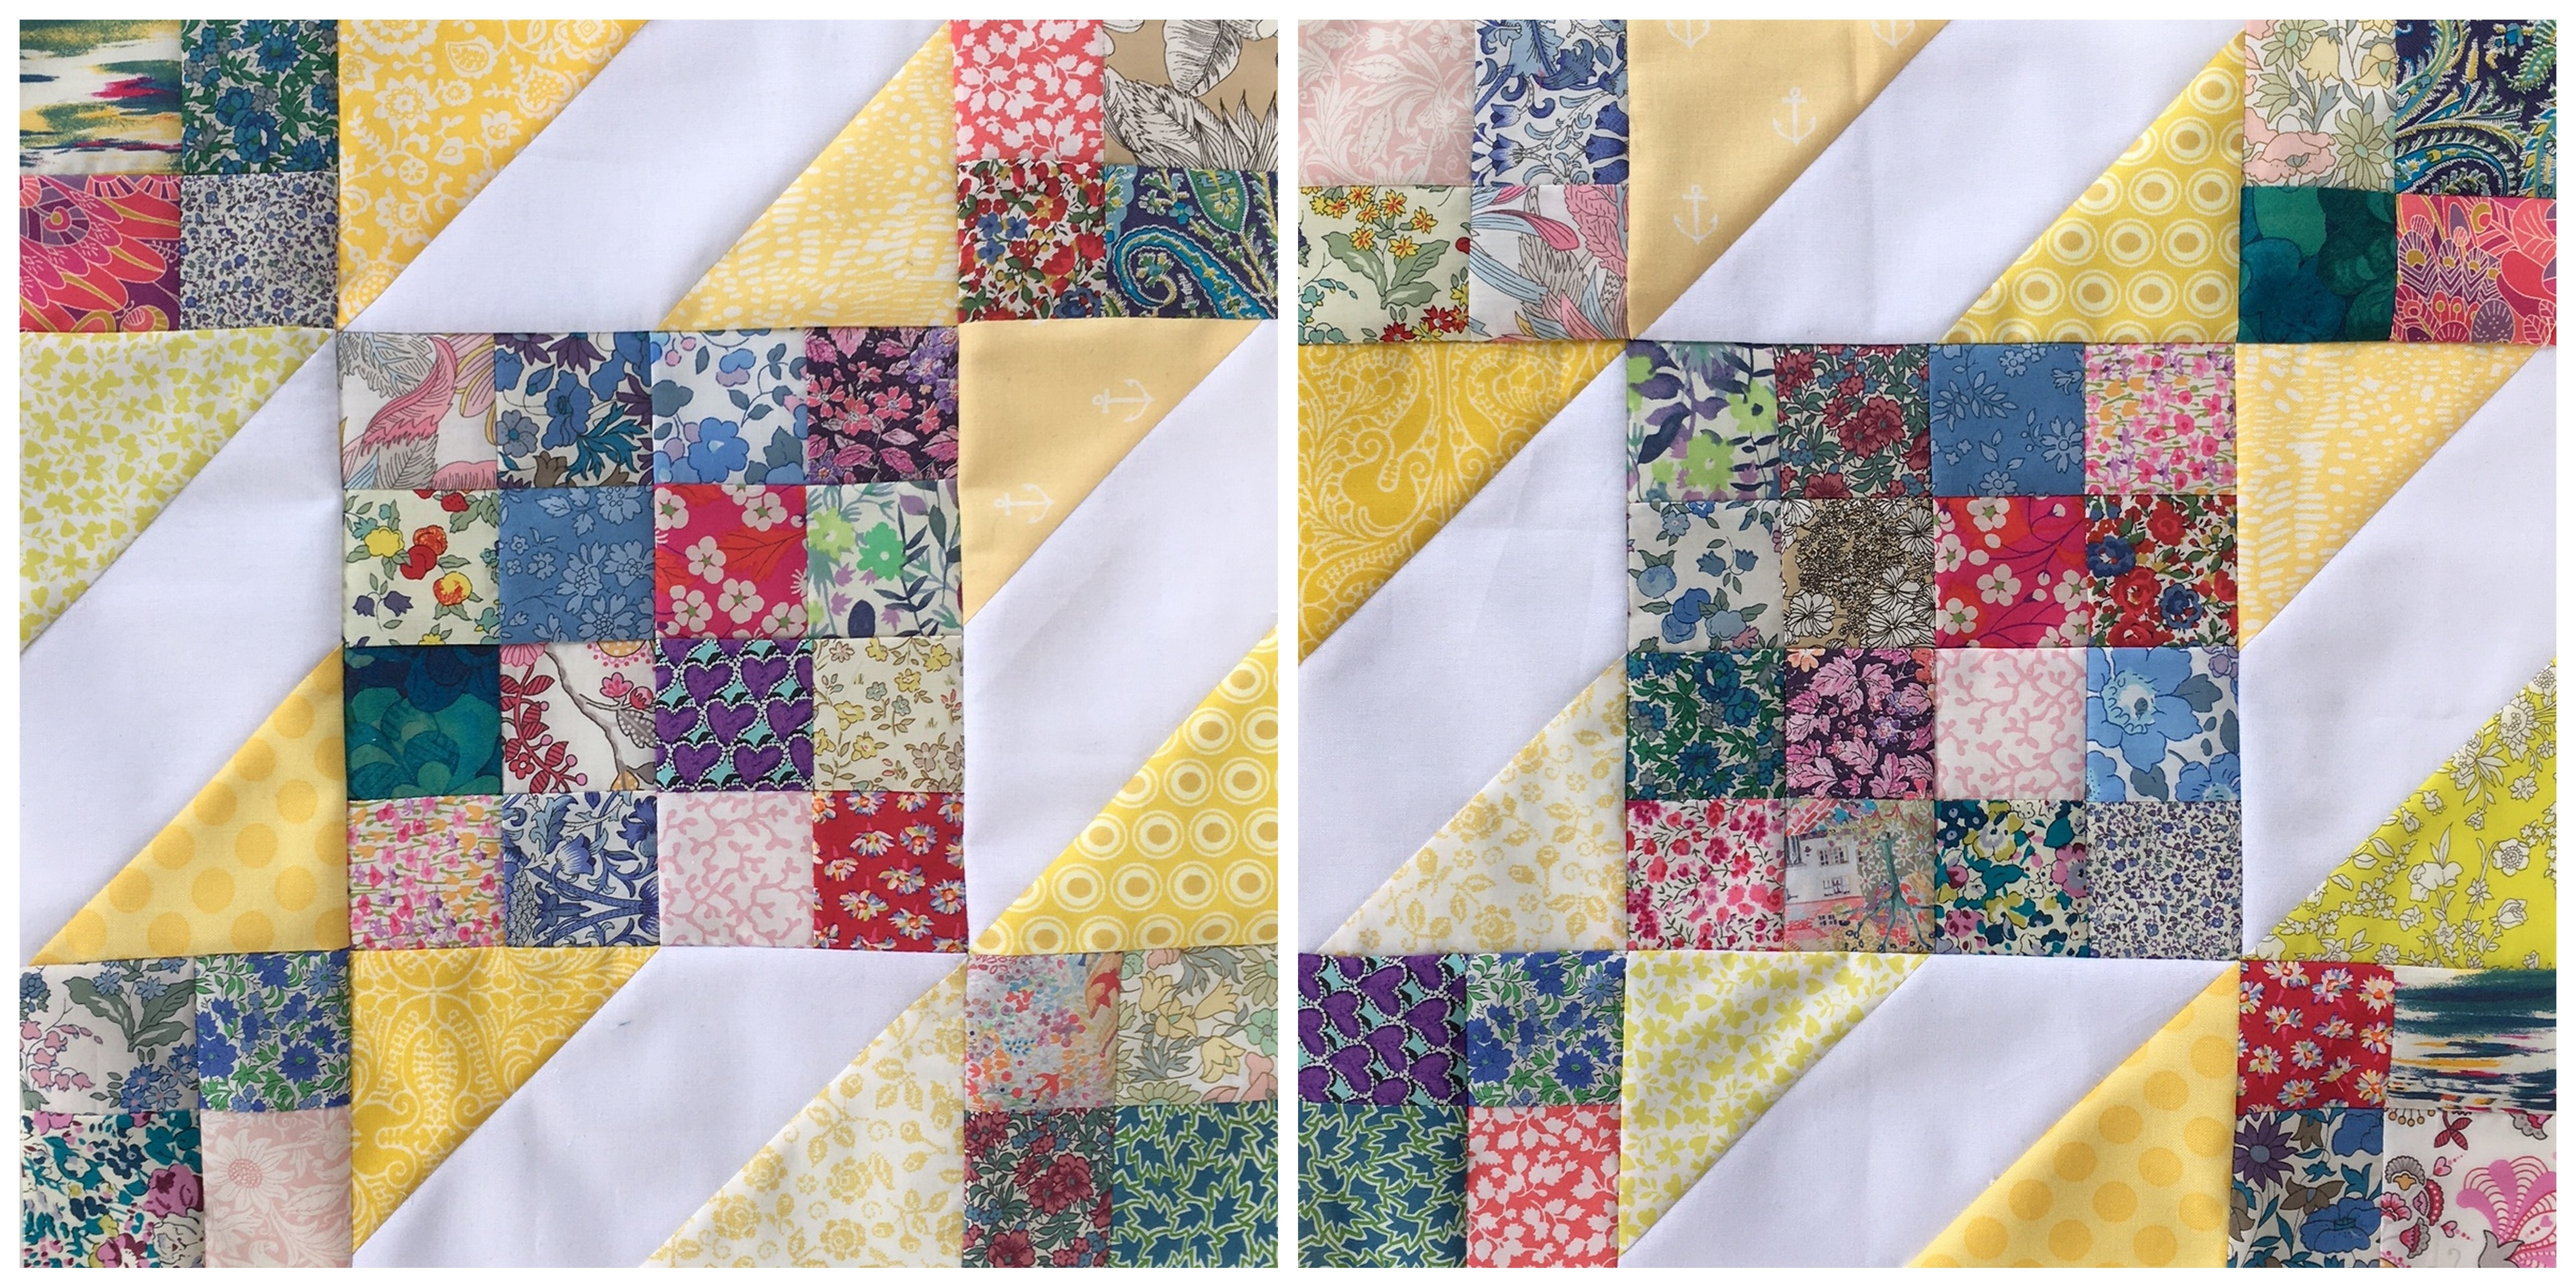 b tda experiencegotexan smith quilts quilt tdaquiltcollection collection